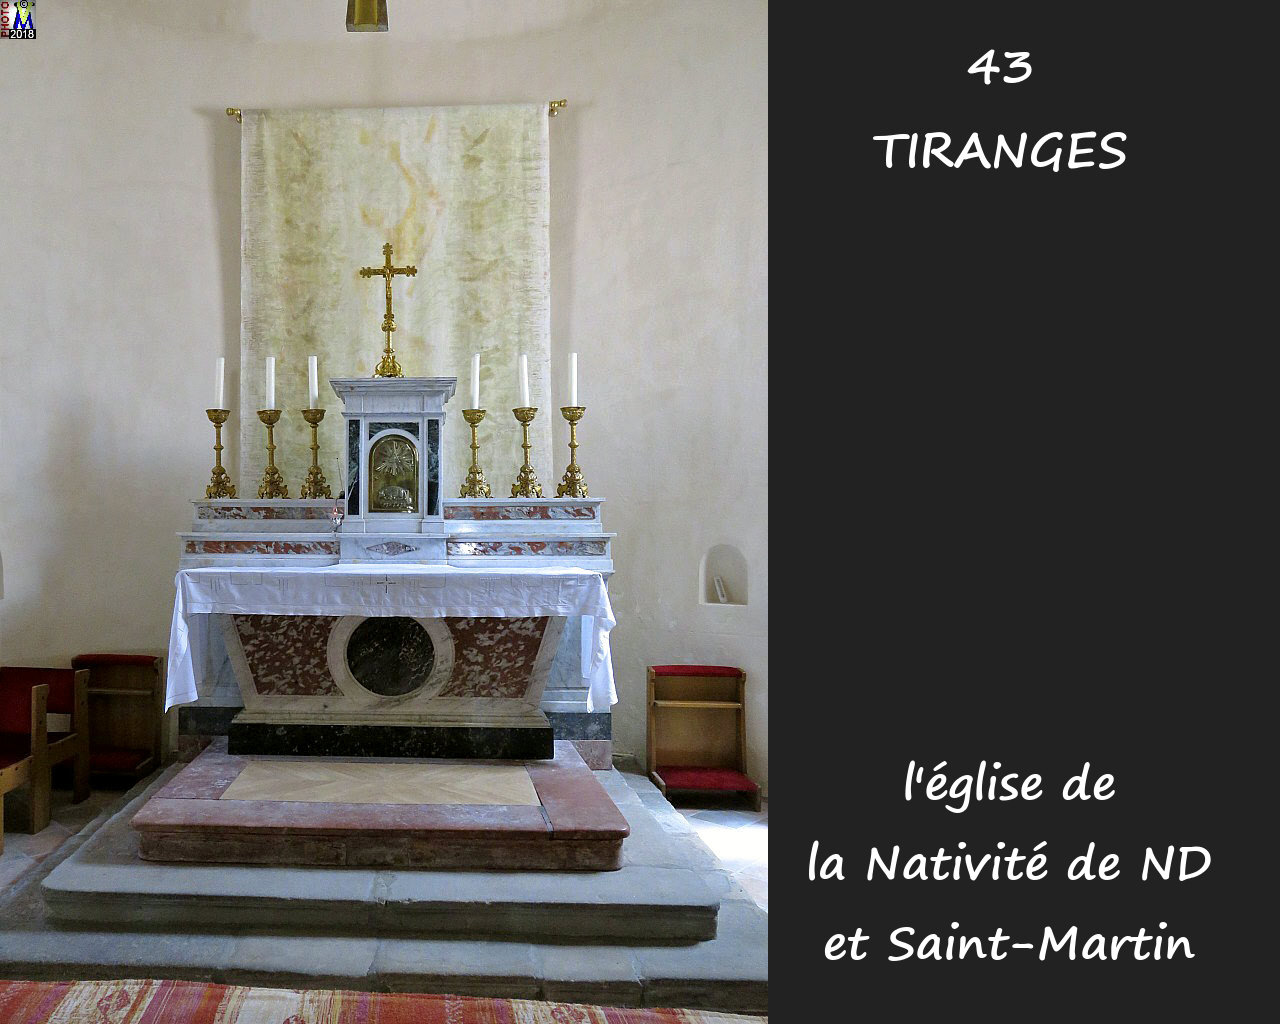 43TIRANGES_eglise_210.jpg